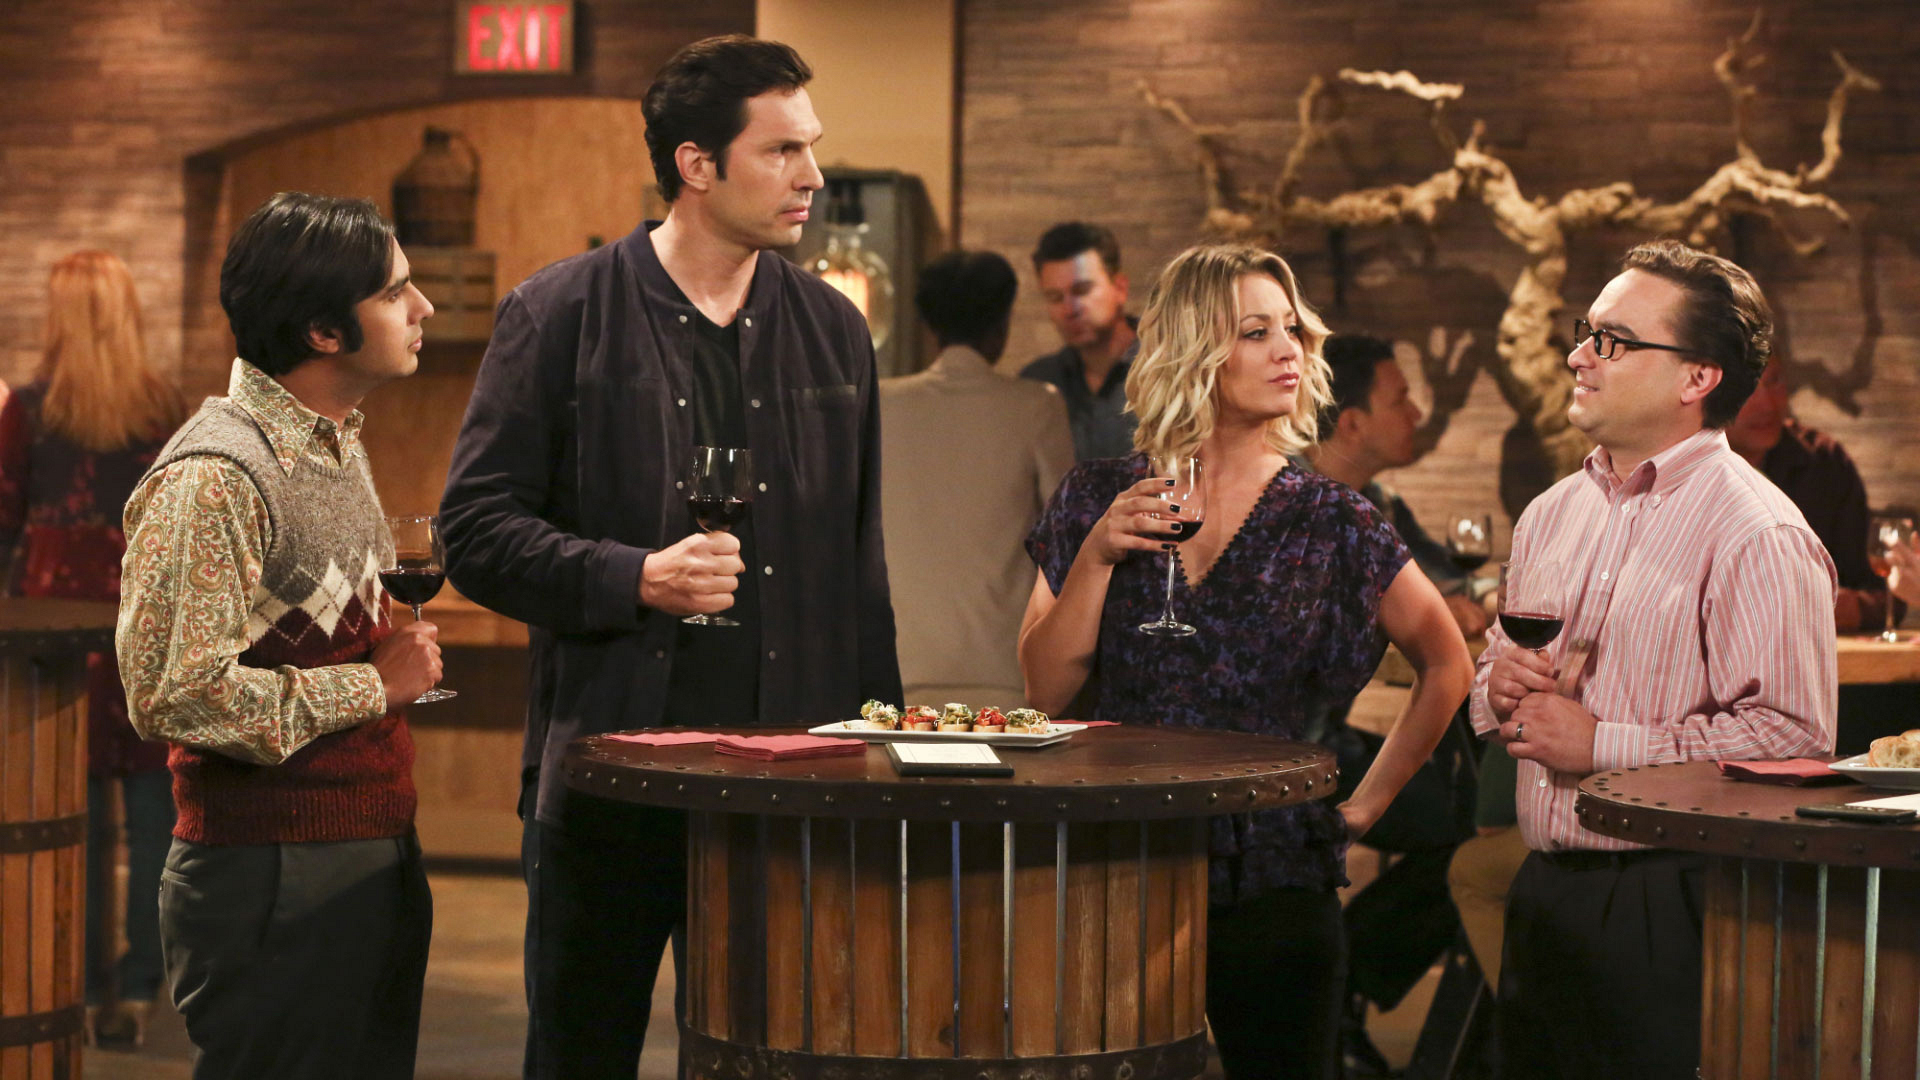 Penny runs into her ex-boyfriend Zack at the wine-tasting event.